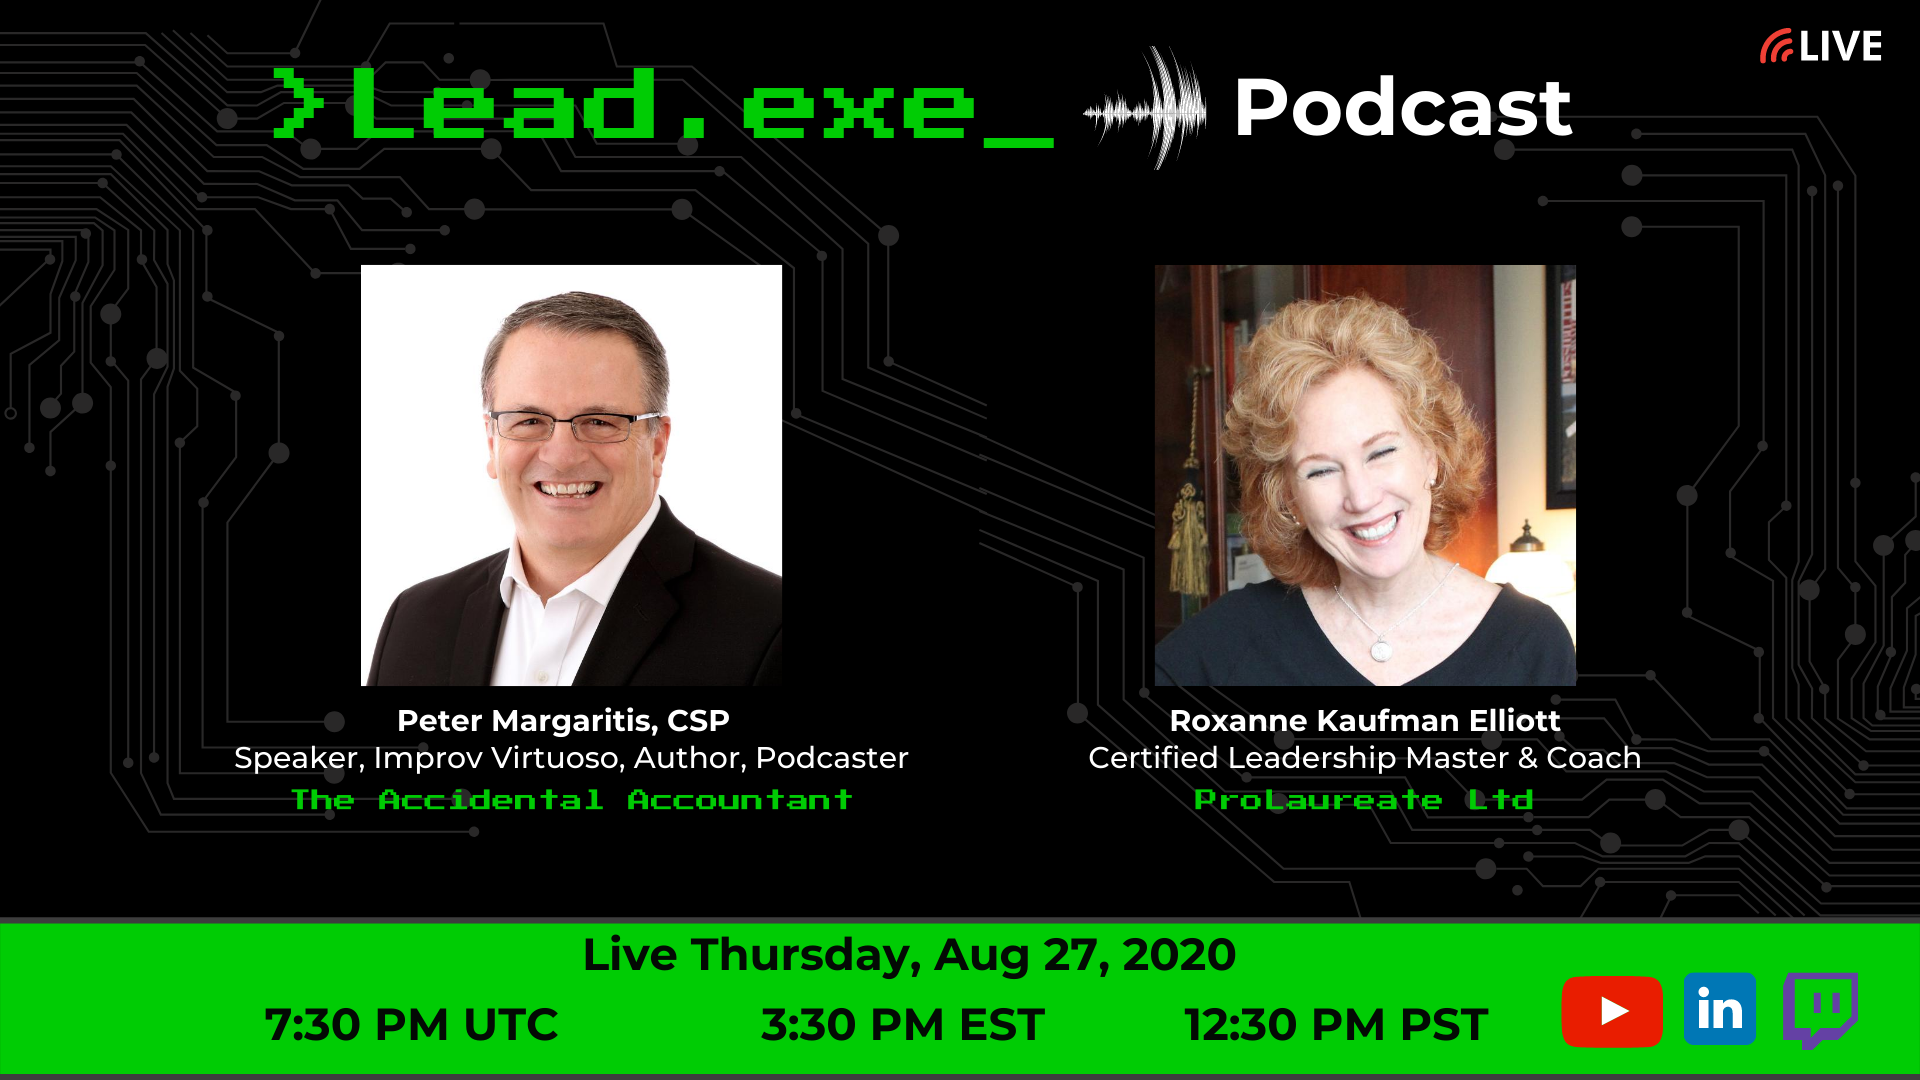 Episode:37 Livestream with Roxanne Kaufman Elliott and Peter Margaritis